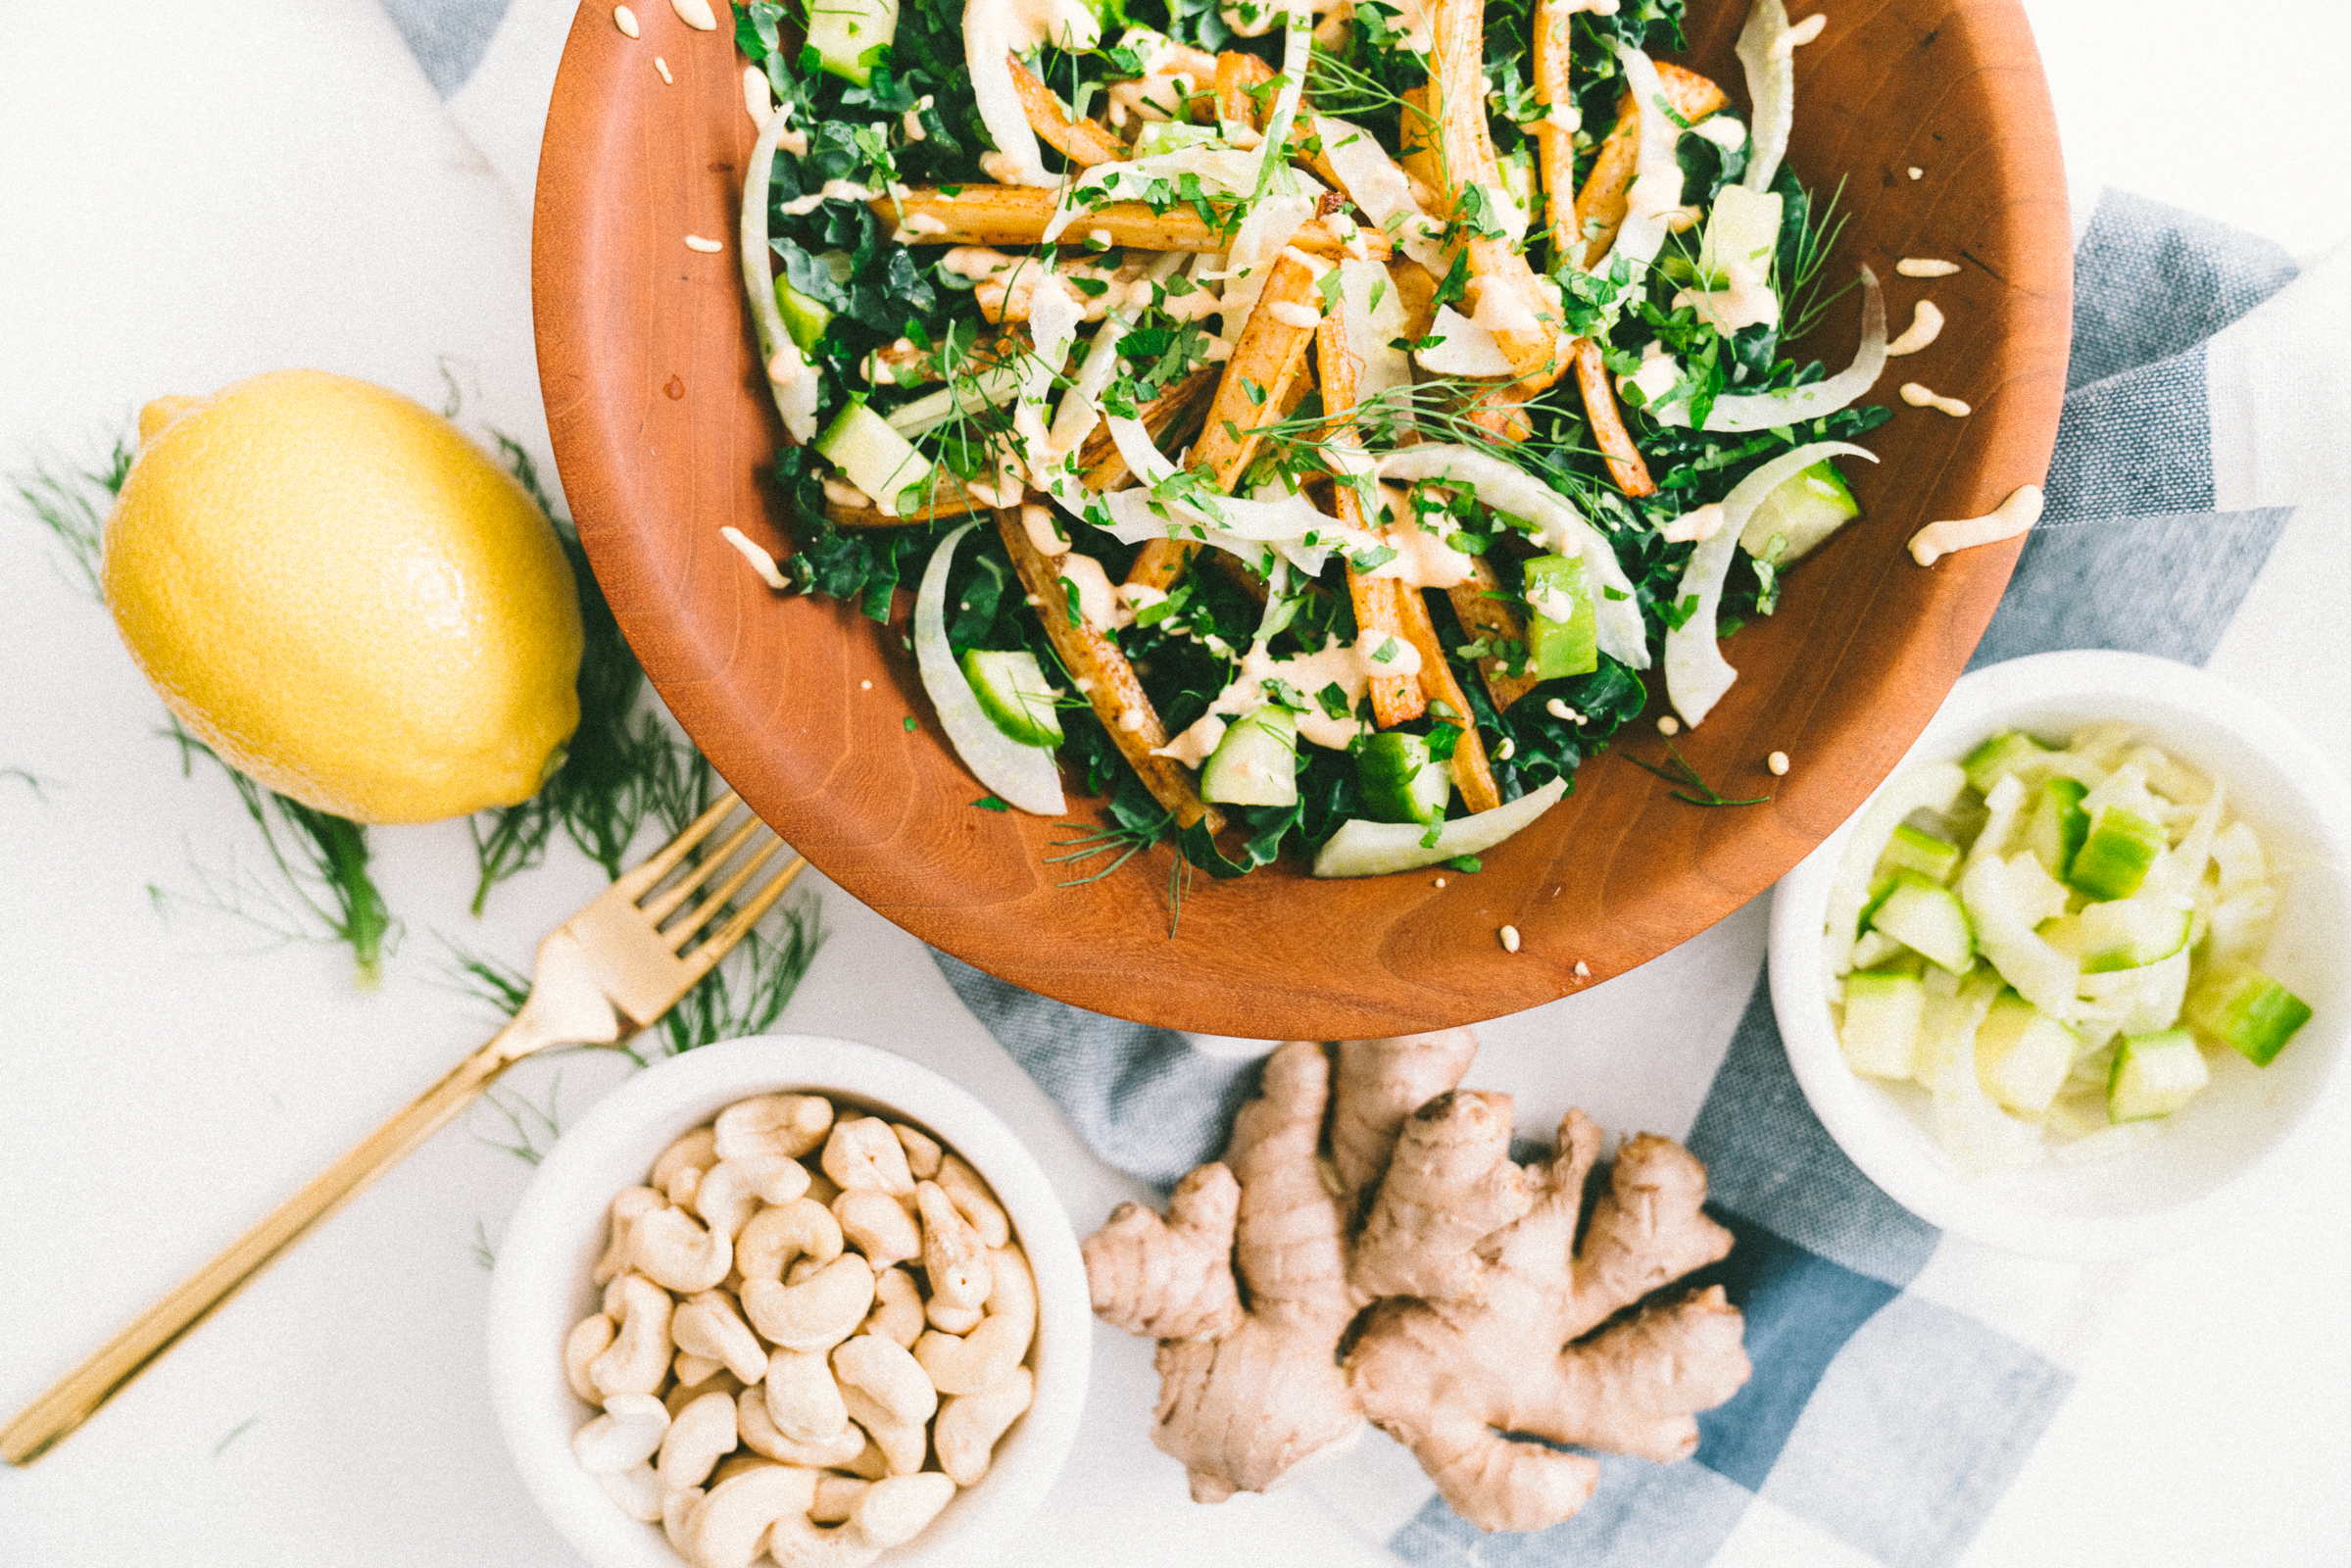 Parsnip French Fry Kale Salad with Turmeric Cashew Dressing